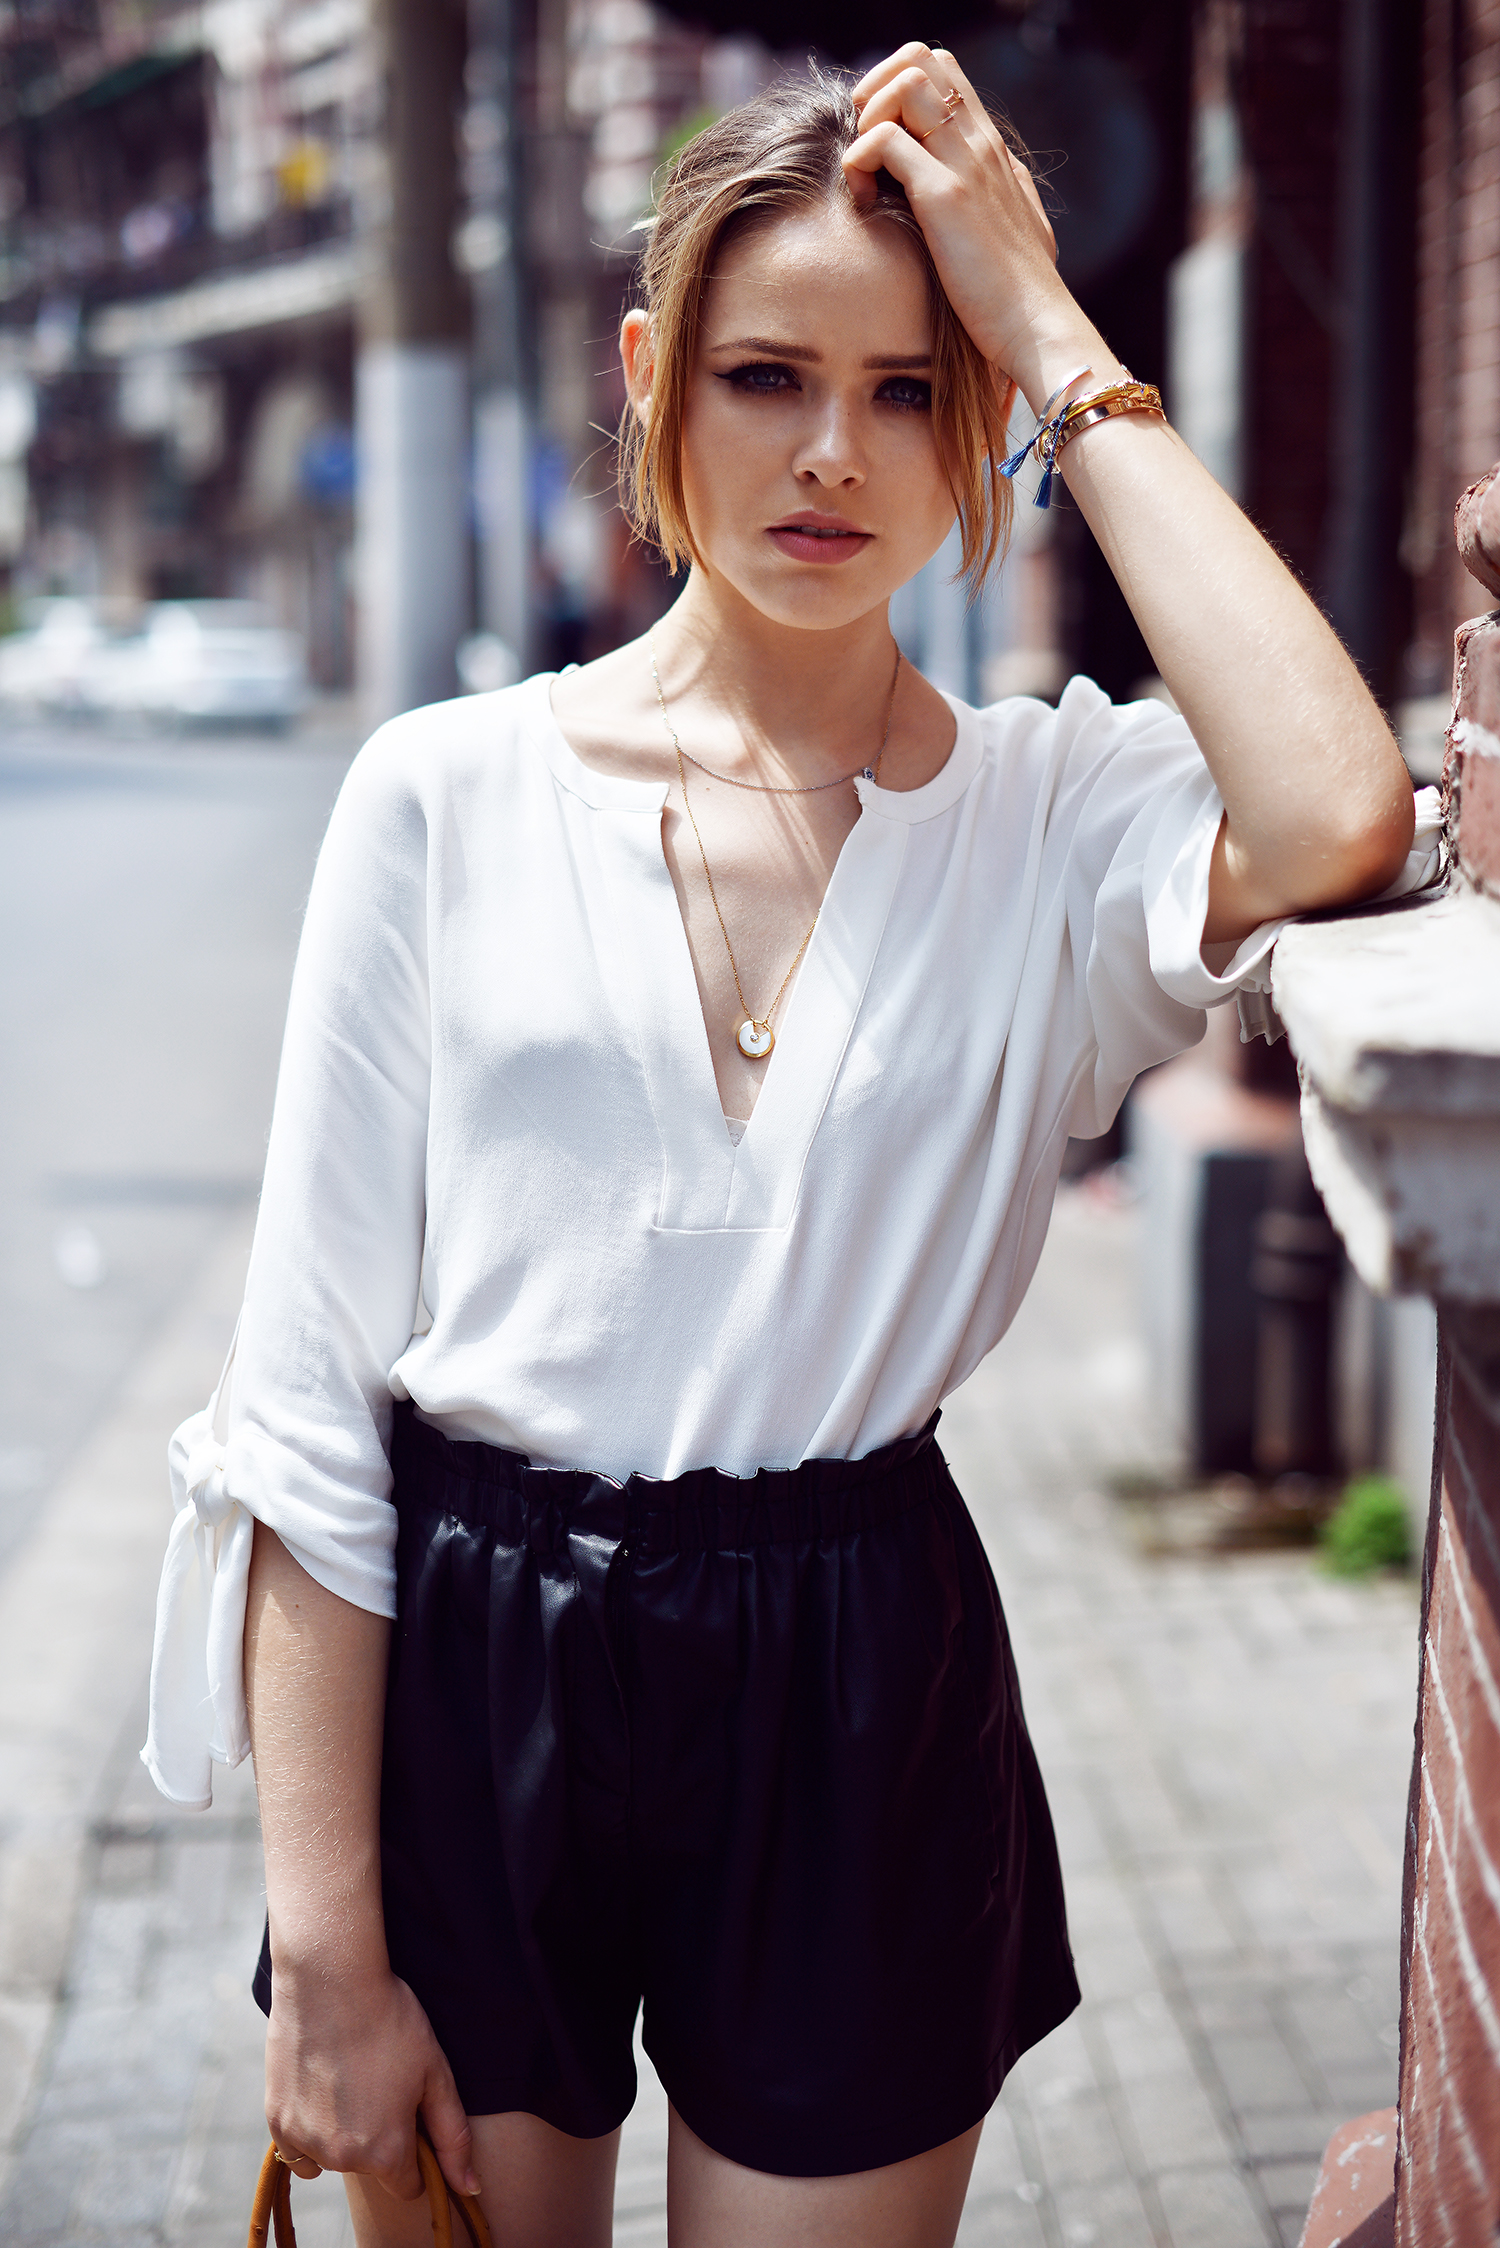 Kristina Bazan is wearing a white top and black shorts from Zara